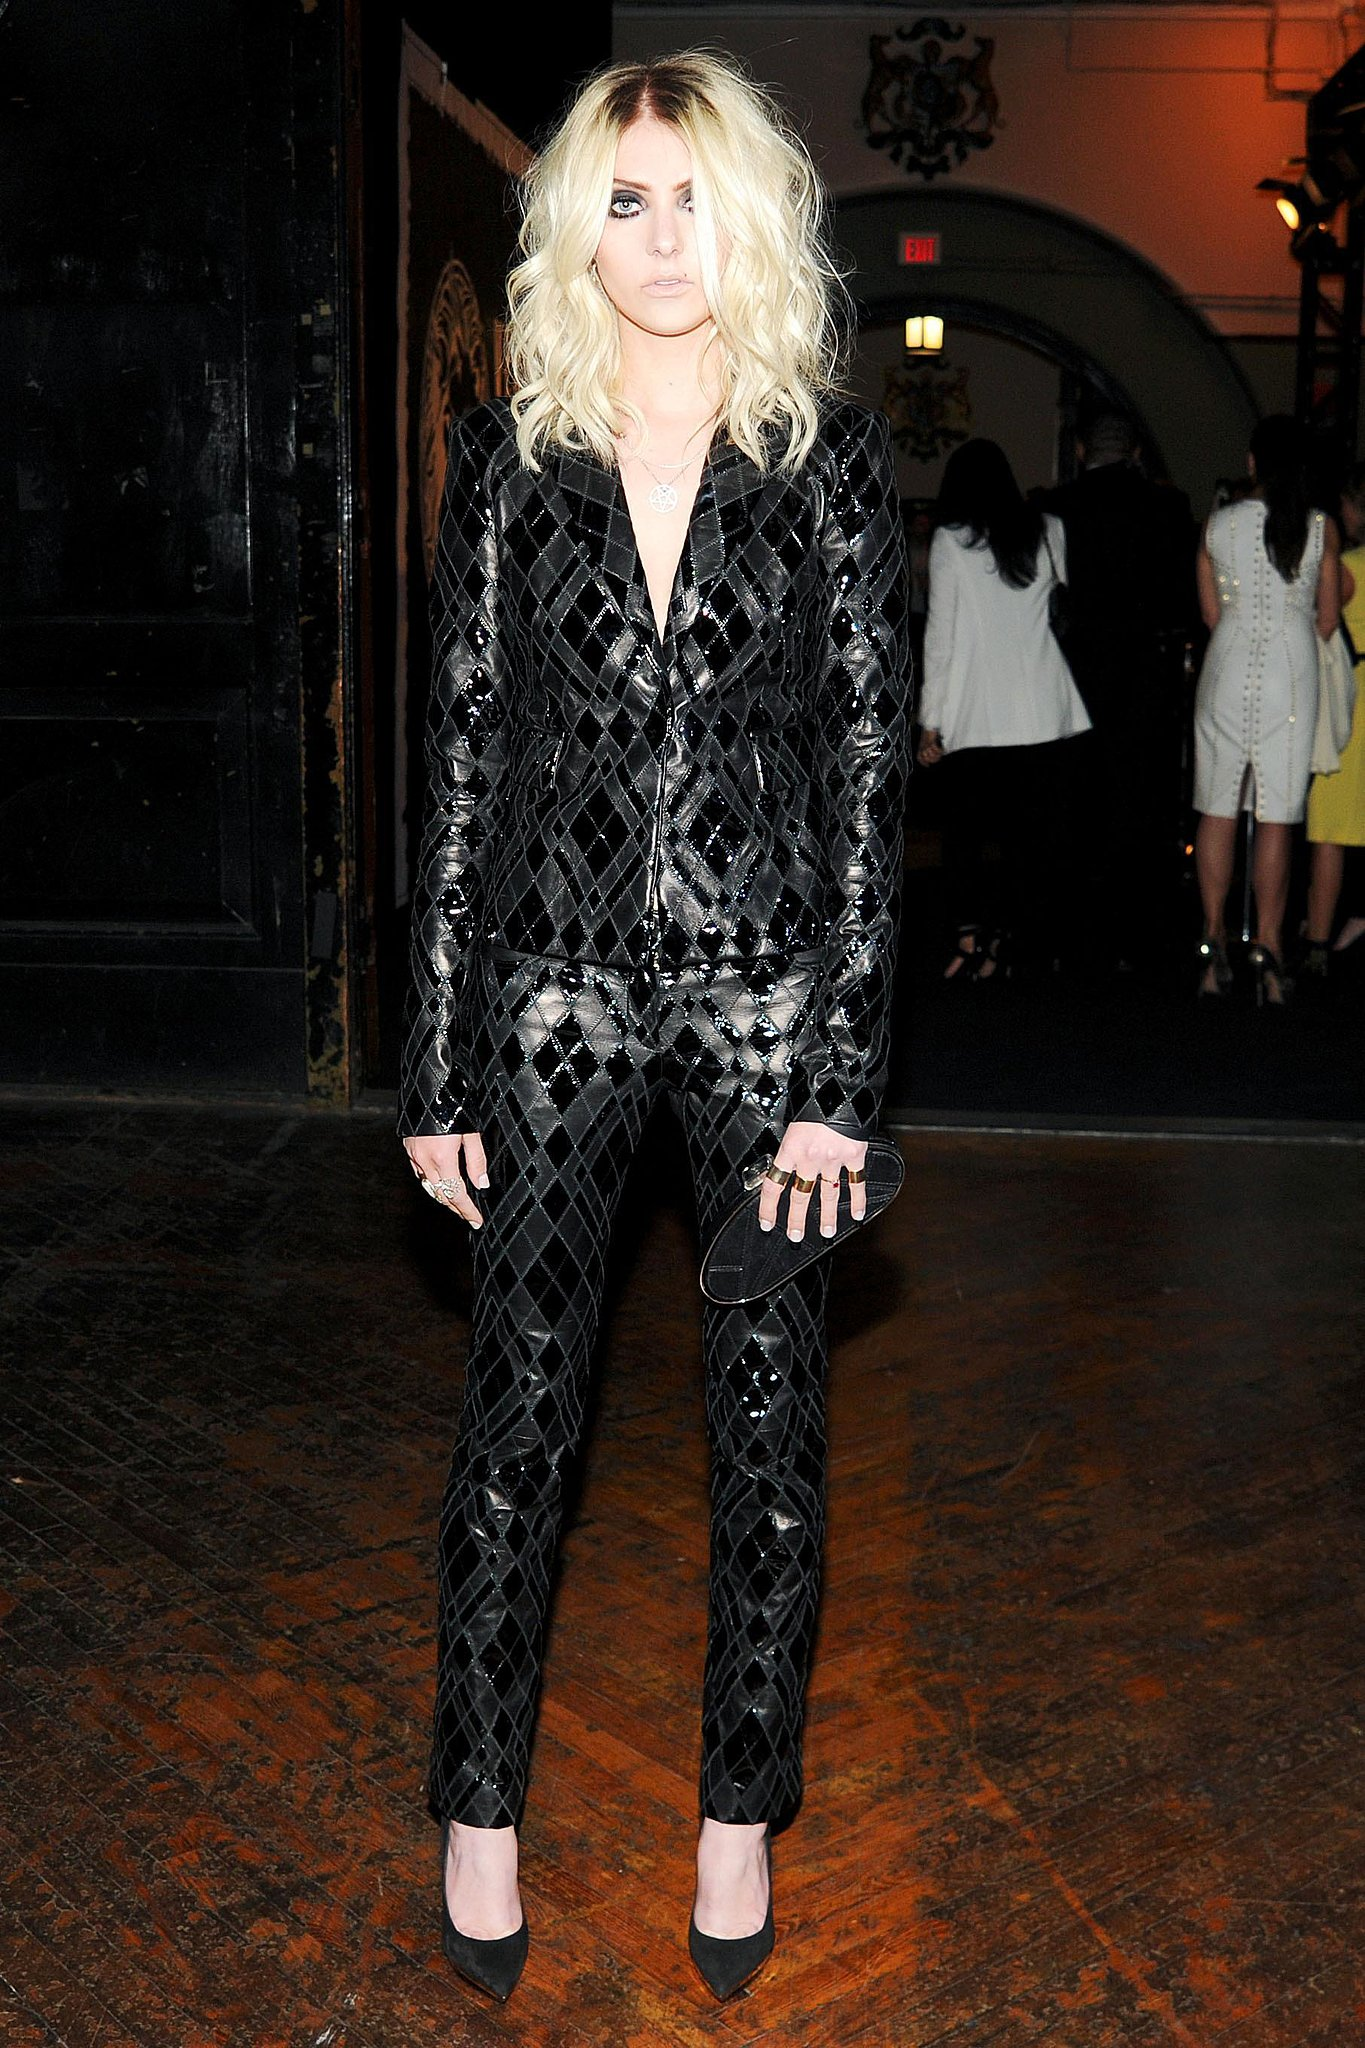 Taylor Momsen at the JW Anderson for Versus Launch Party. Source: Billy Farrell/BFAnyc.com